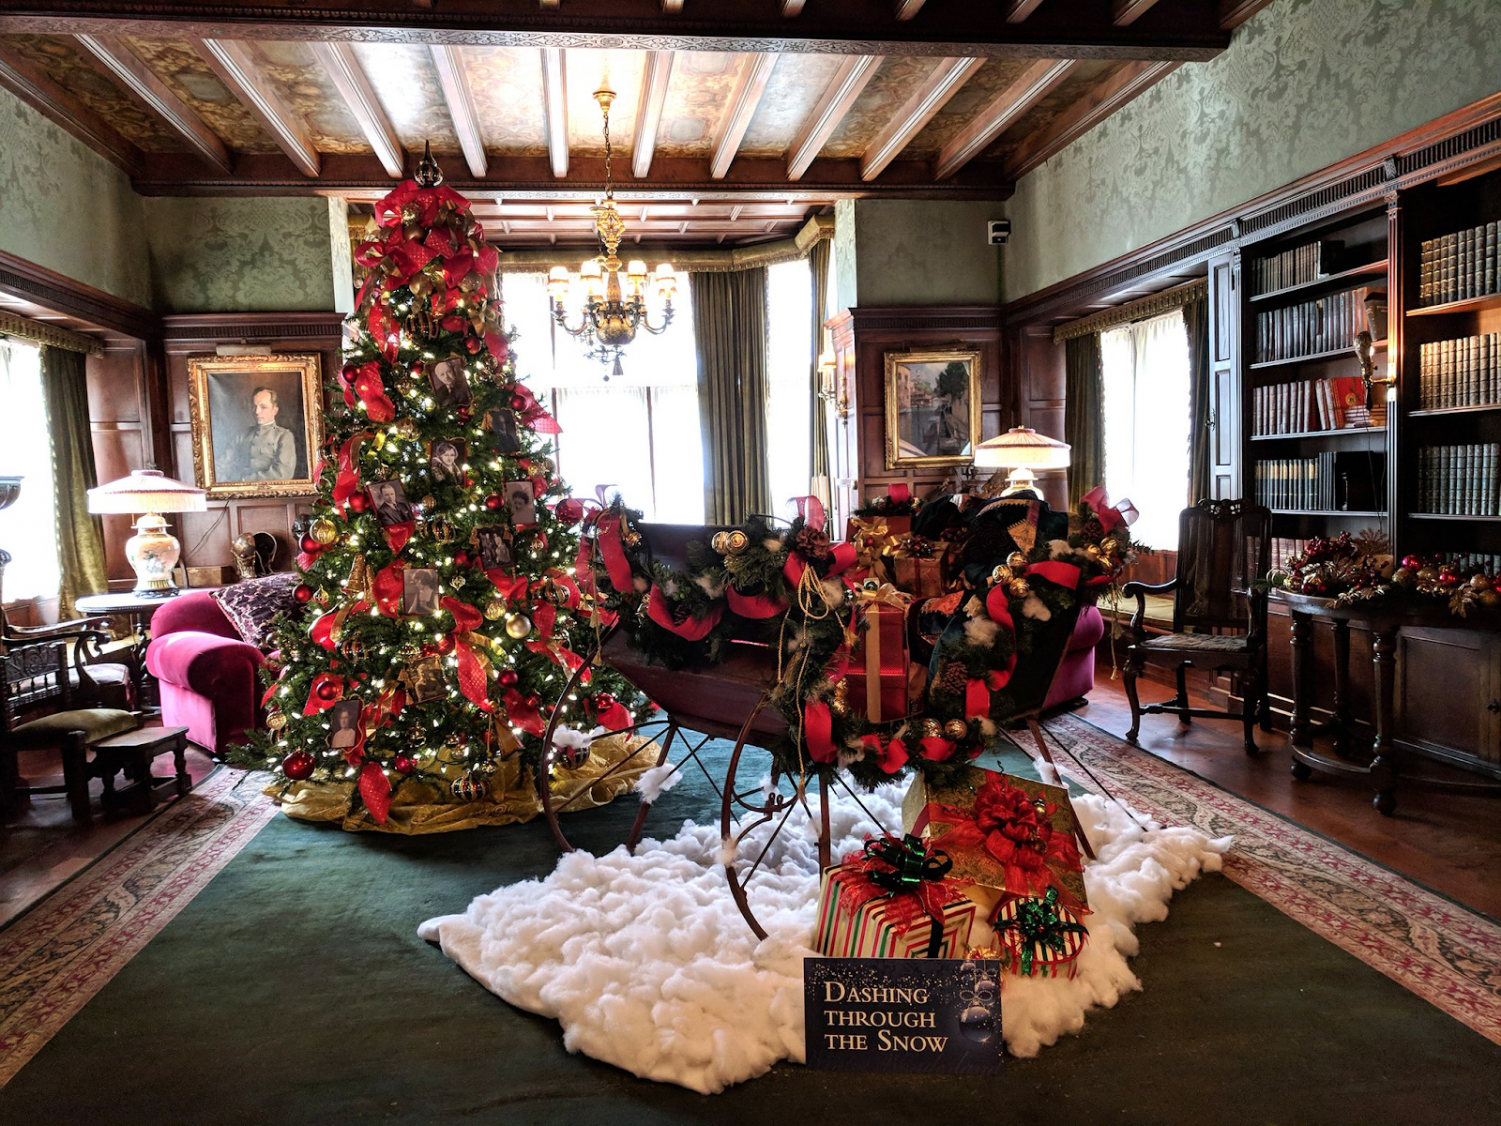 (Image via Stan Hywet Hall)